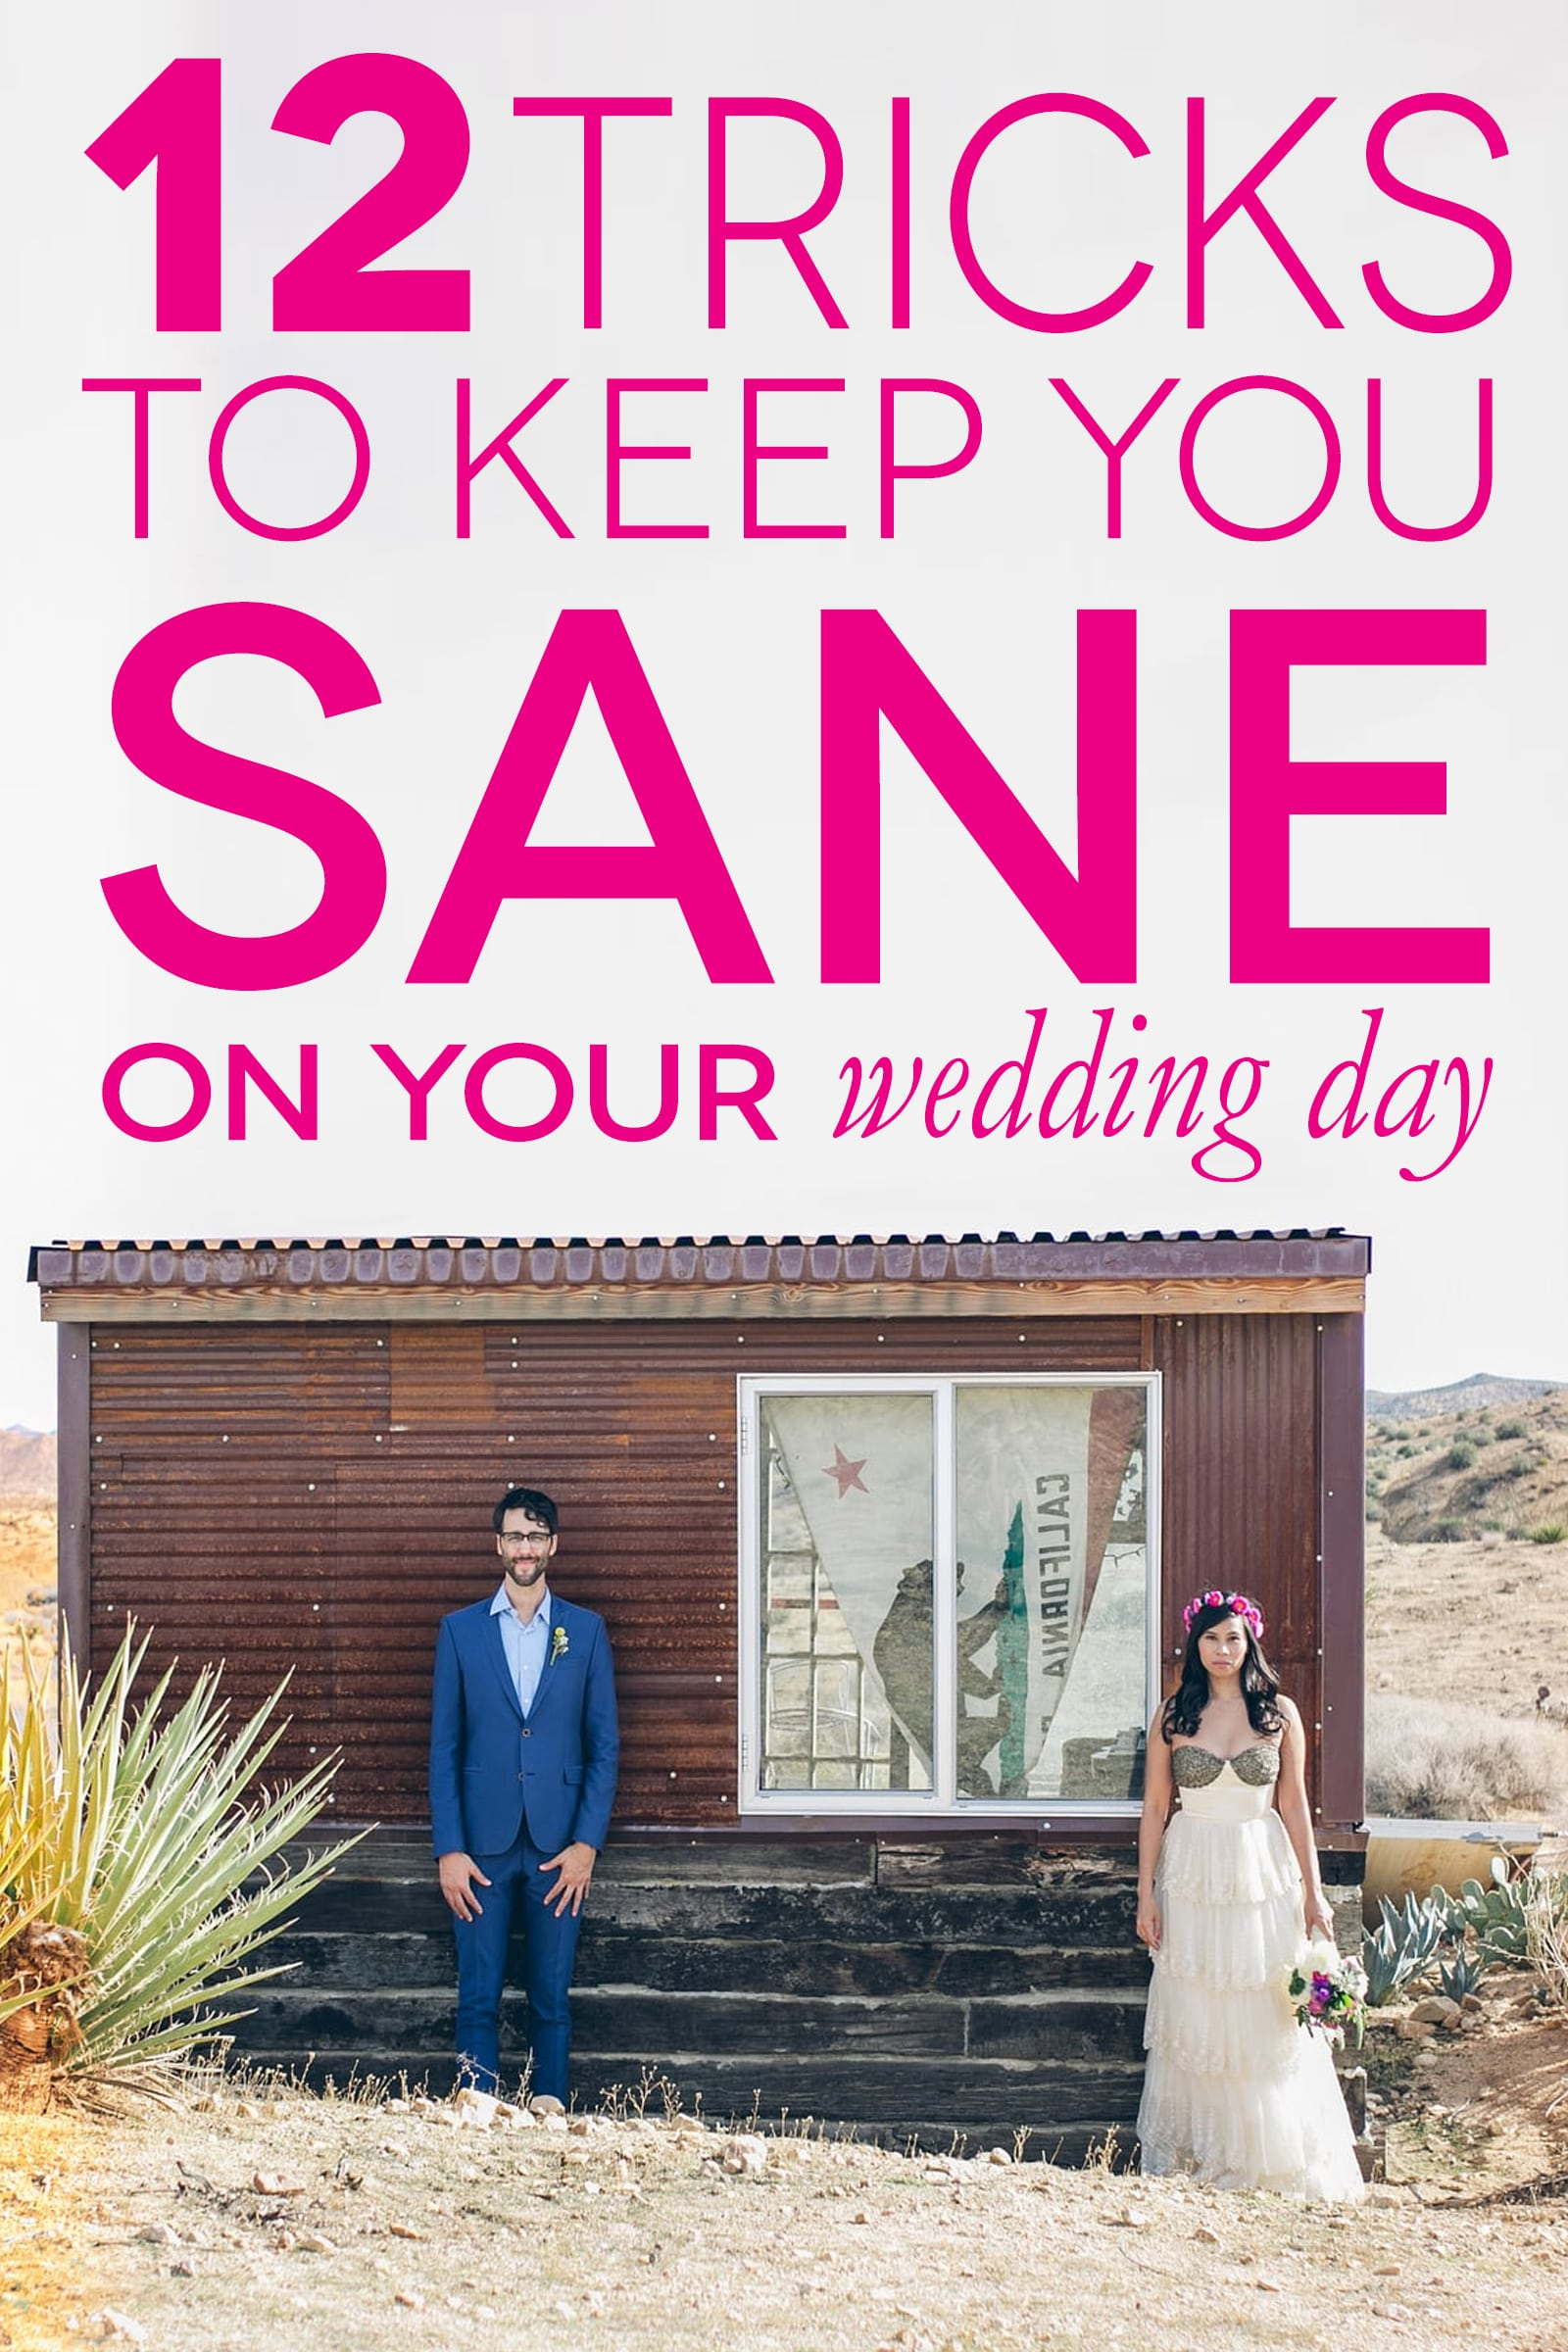 Wedding coordinator tricks to keep you sane on your wedding day - a couple stands outside a shack.